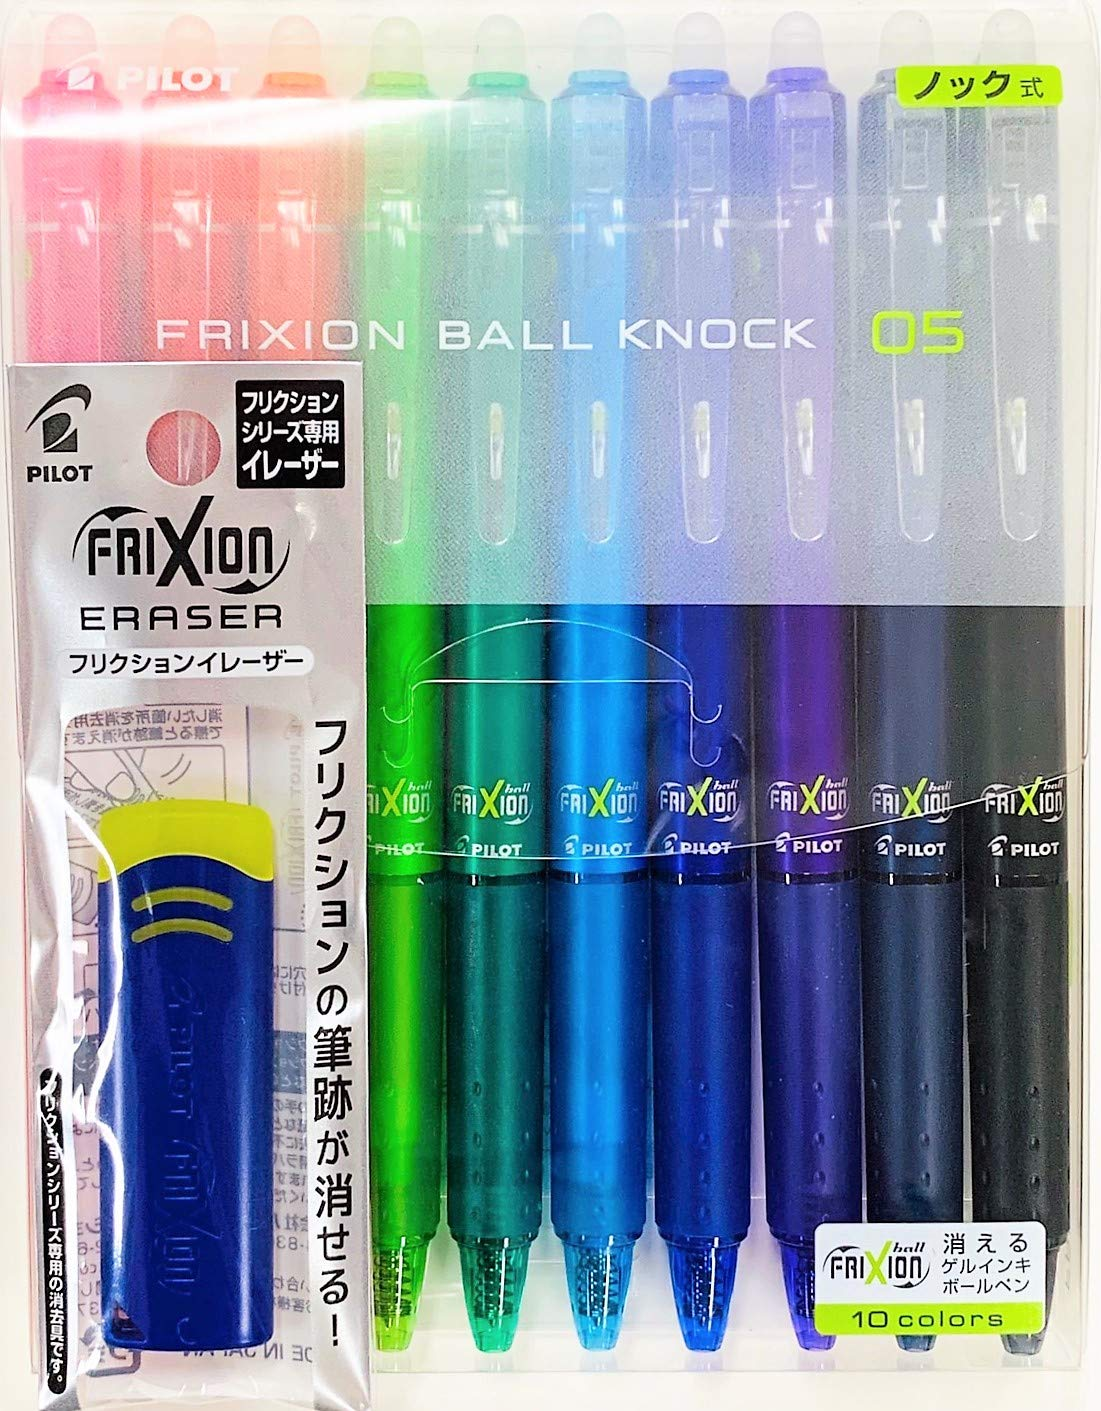 Pilot Frixion Ball Knock Retractable Gel Ink Pen 0.5mm 10 Colors Set & FriXion Eraser with the Original Sticky notes